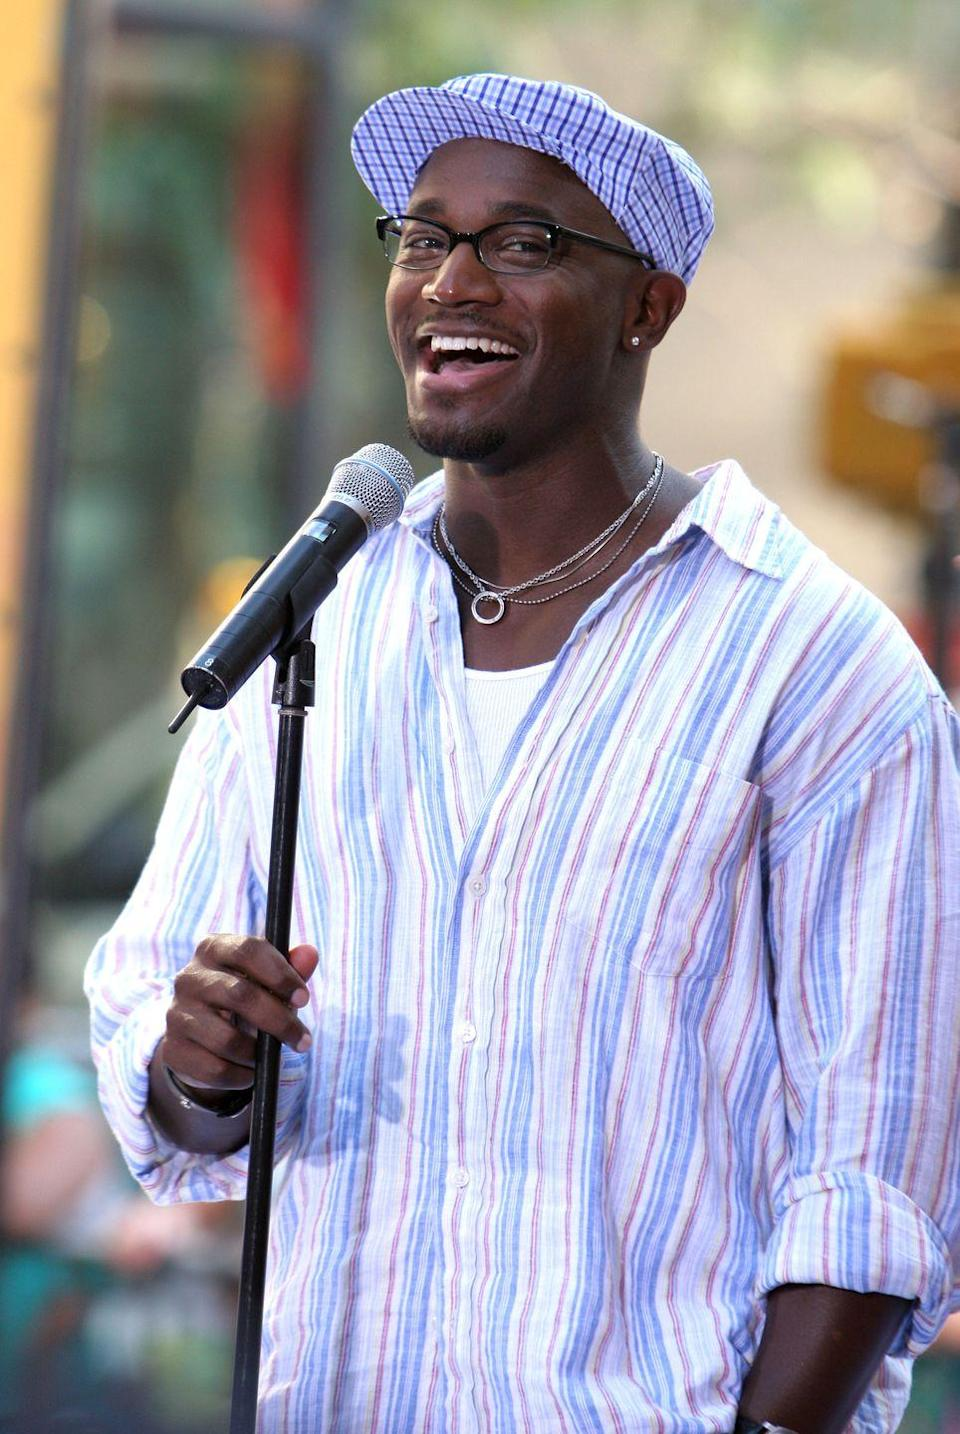 <p>Taye Diggs originated the role of Benny in the original run of <em>Rent</em> in 1996. A year later, he debuted on TV in the soap opera <em>Guiding Light. </em>In 1998, he crossed over to make his big-screen debut in the blockbuster <em>How Stella Got Her Groove Back. </em></p>